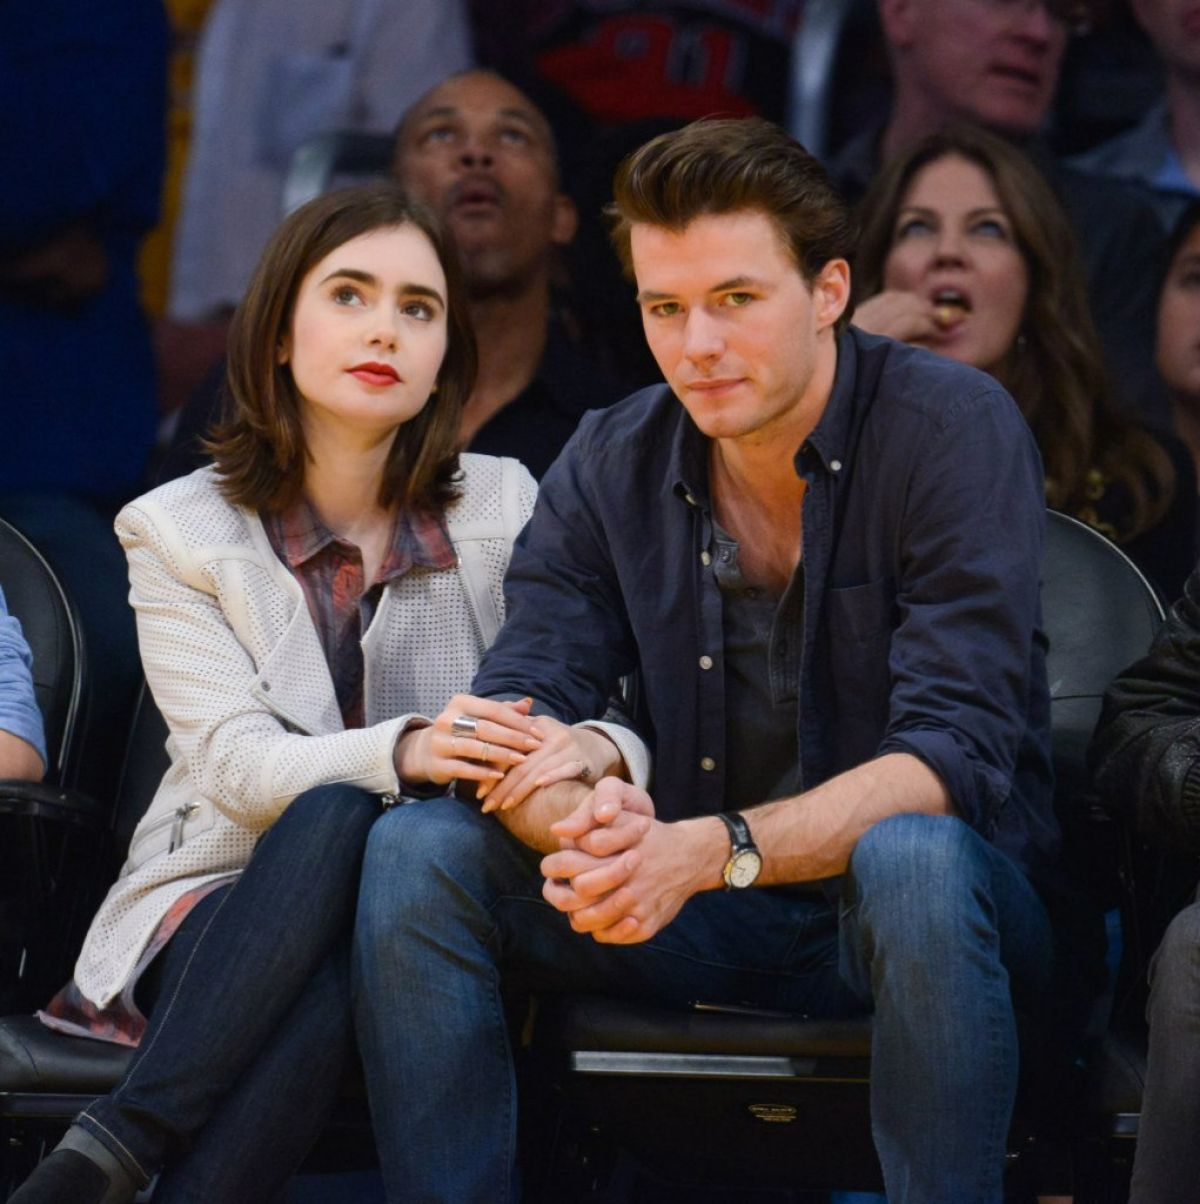 LILY COLLINS and Thomas Cocquerel at Lakers vs Bulls Game in Los Angeles